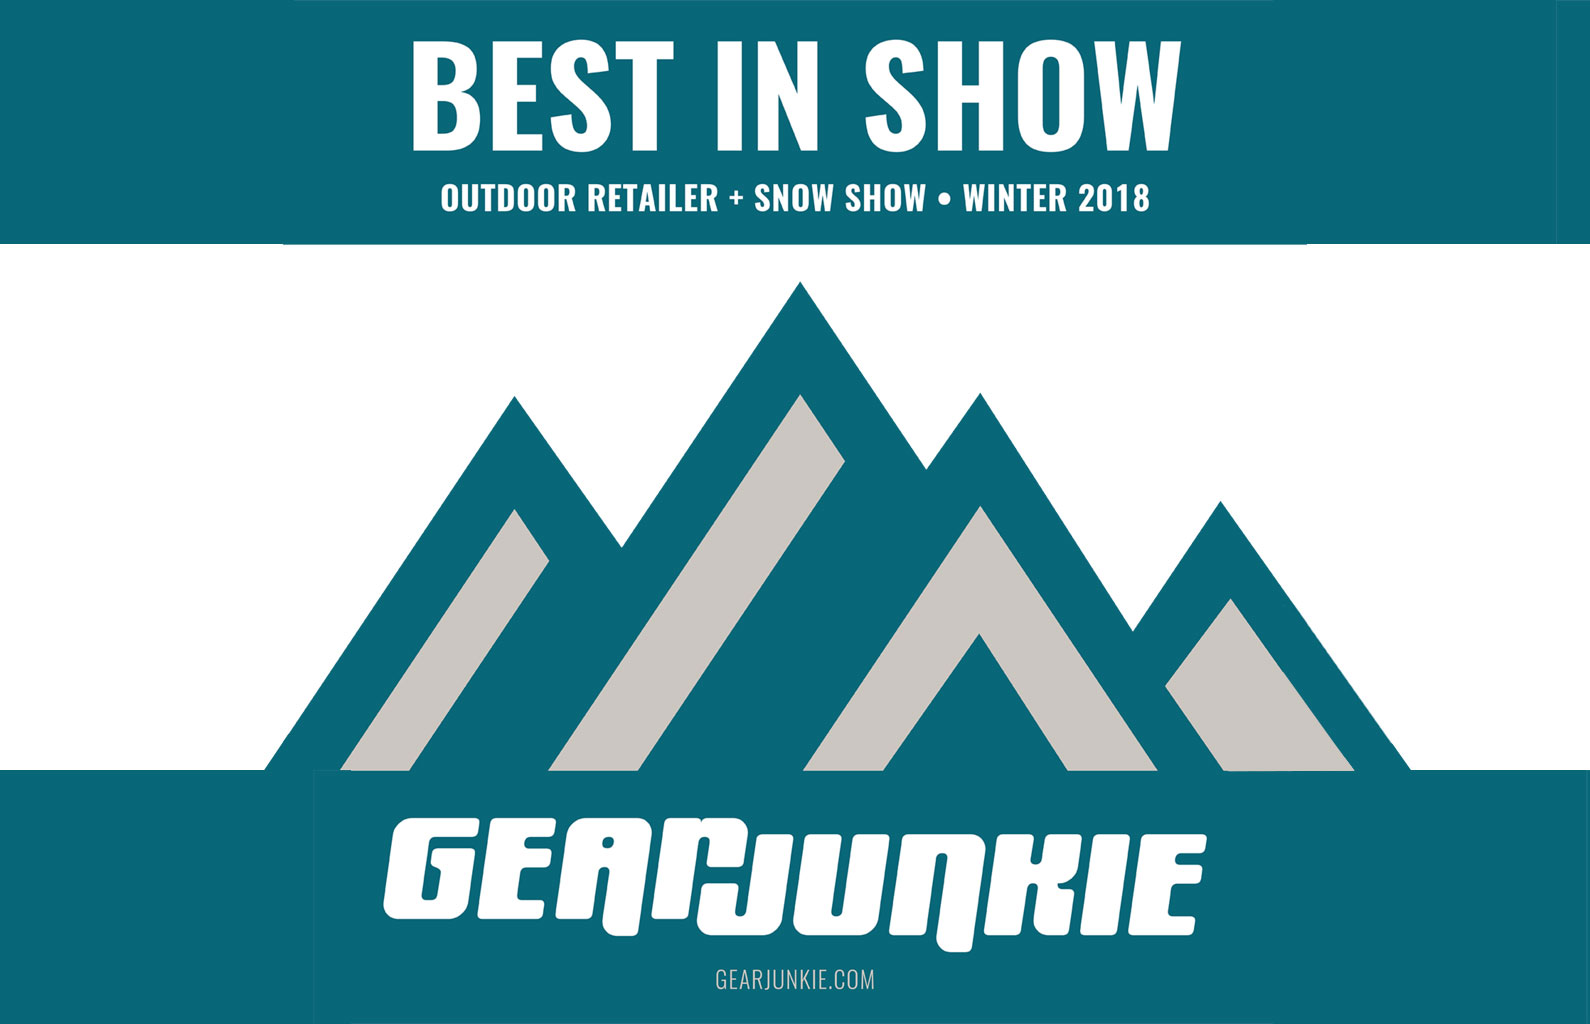 From Ski Gear To Jackets Winter Camping Supplies Packs And More Brands Congregate Launch Products At The OR Show Official Name Outdoor Retailer